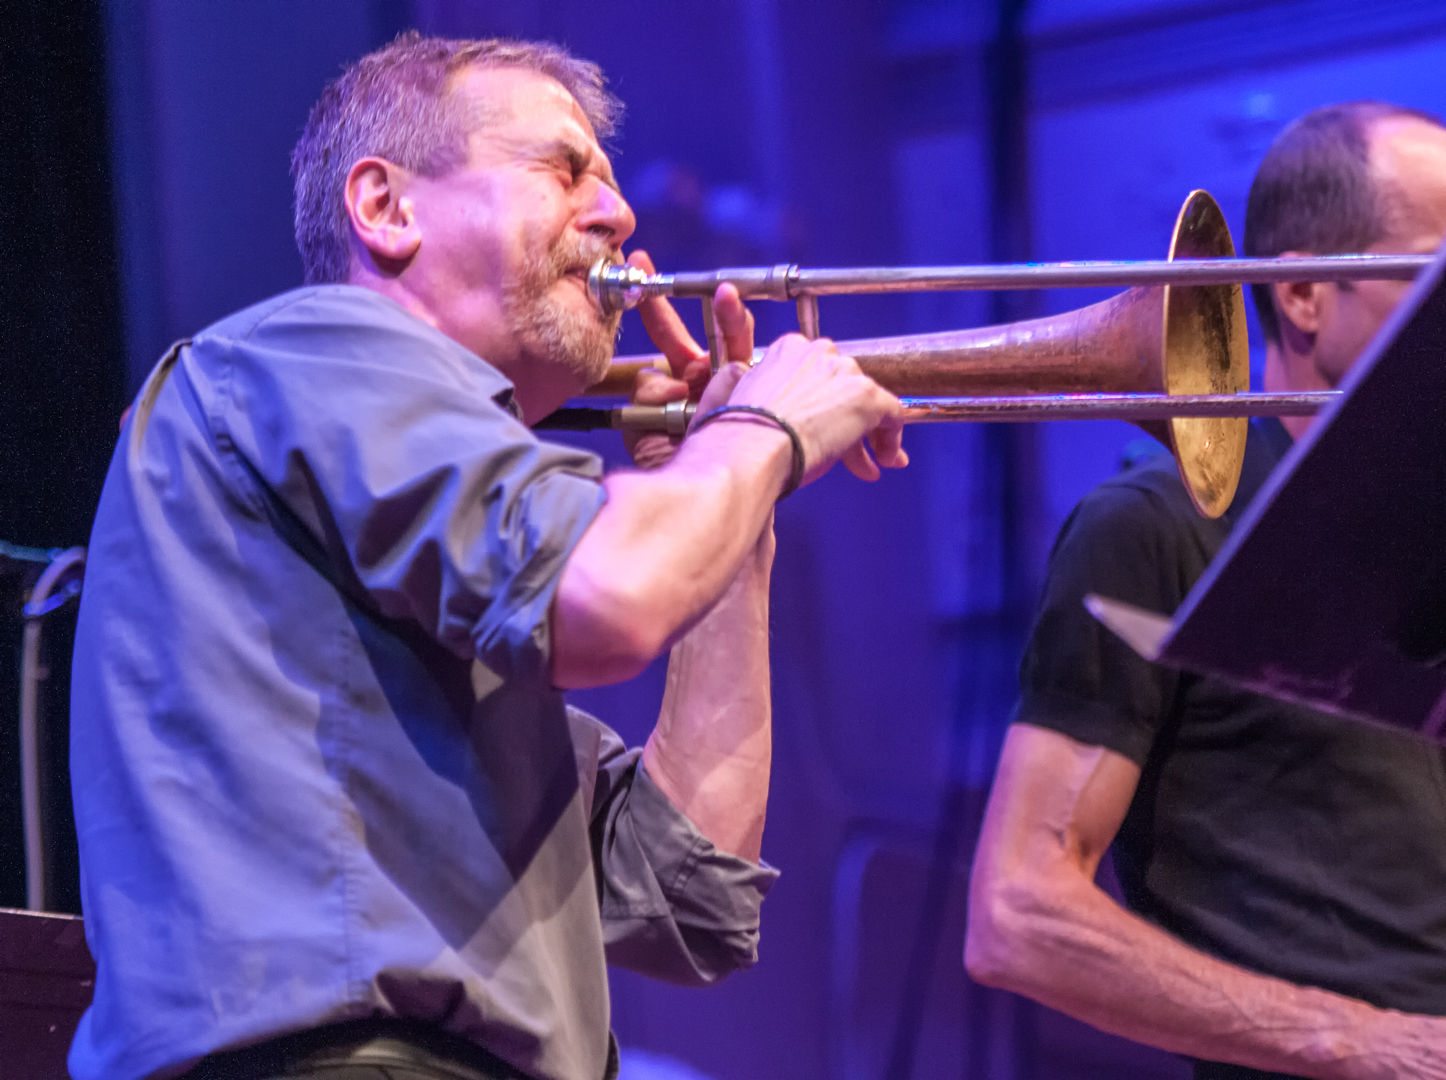 Steve swell with quintet at the vision festival 2012